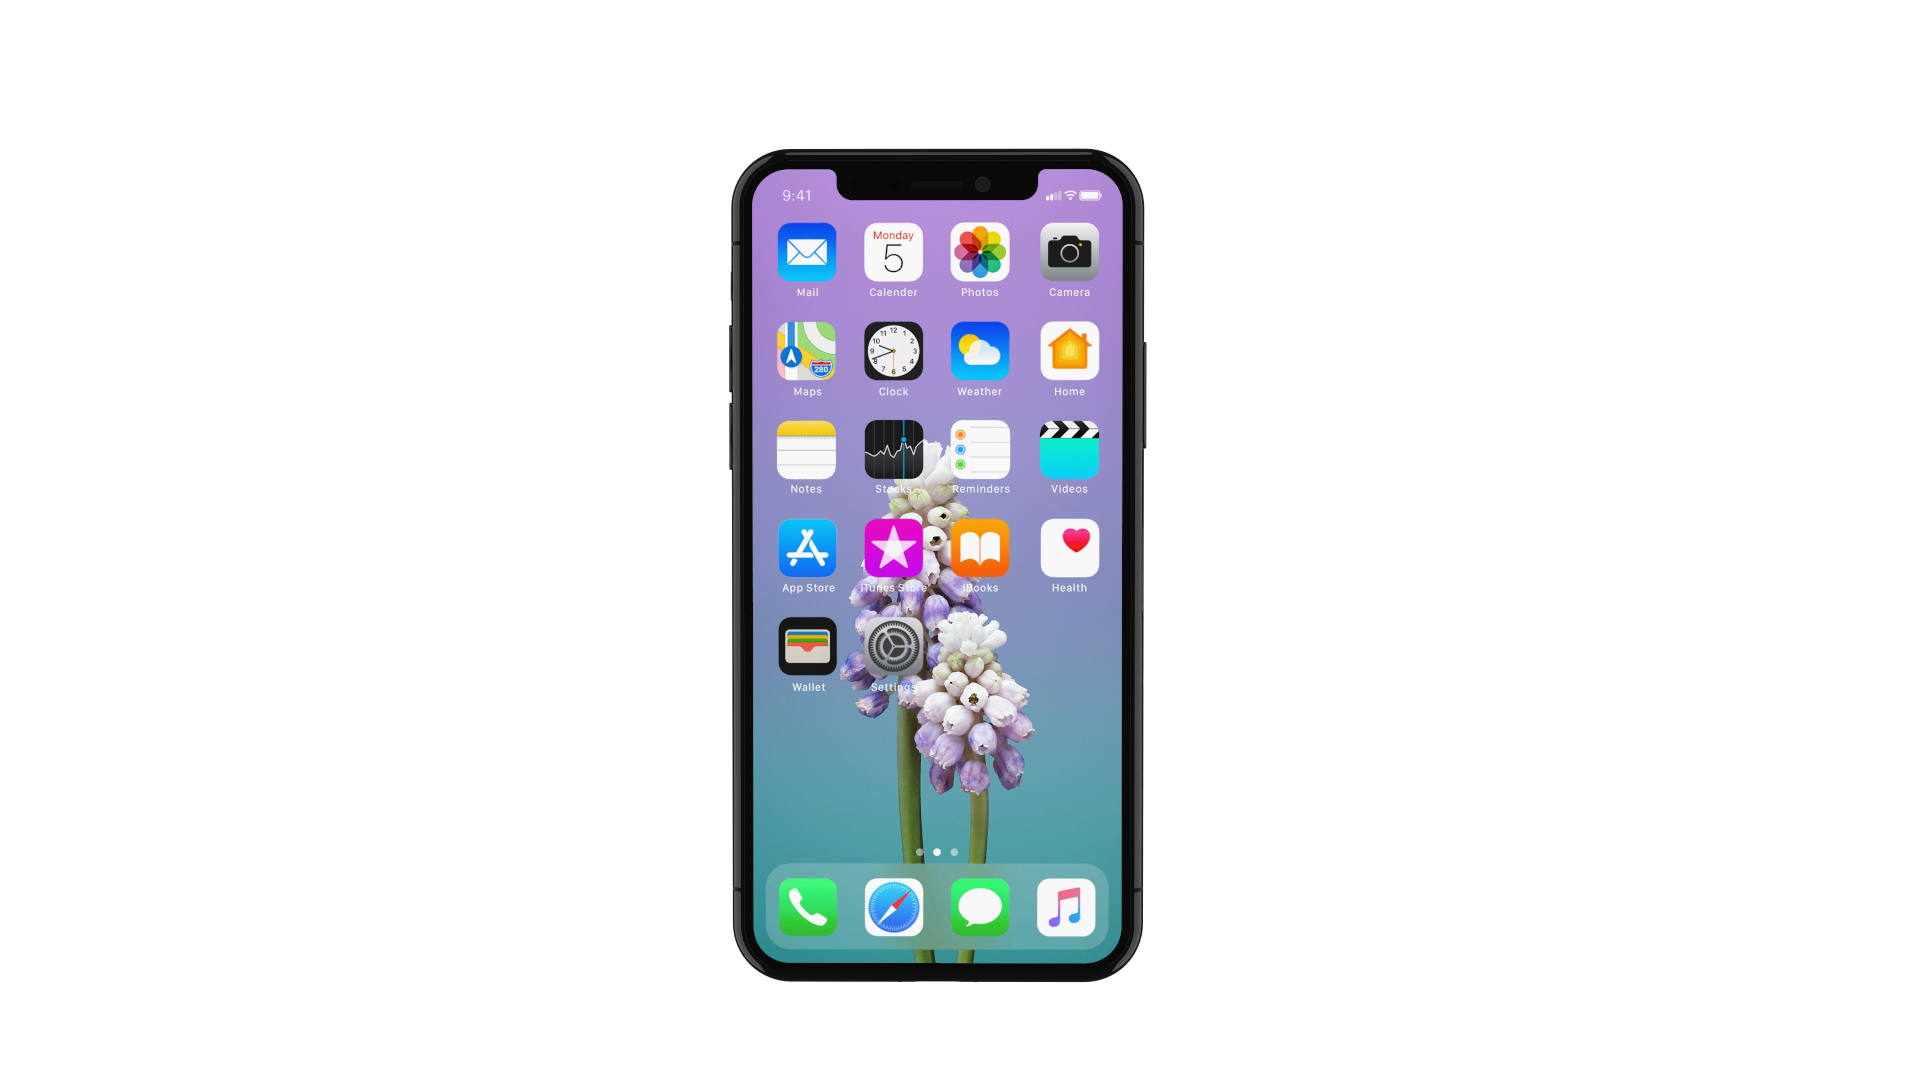 Element 3d Apple Iphone X Iphone Apple Iphone Hd Textures